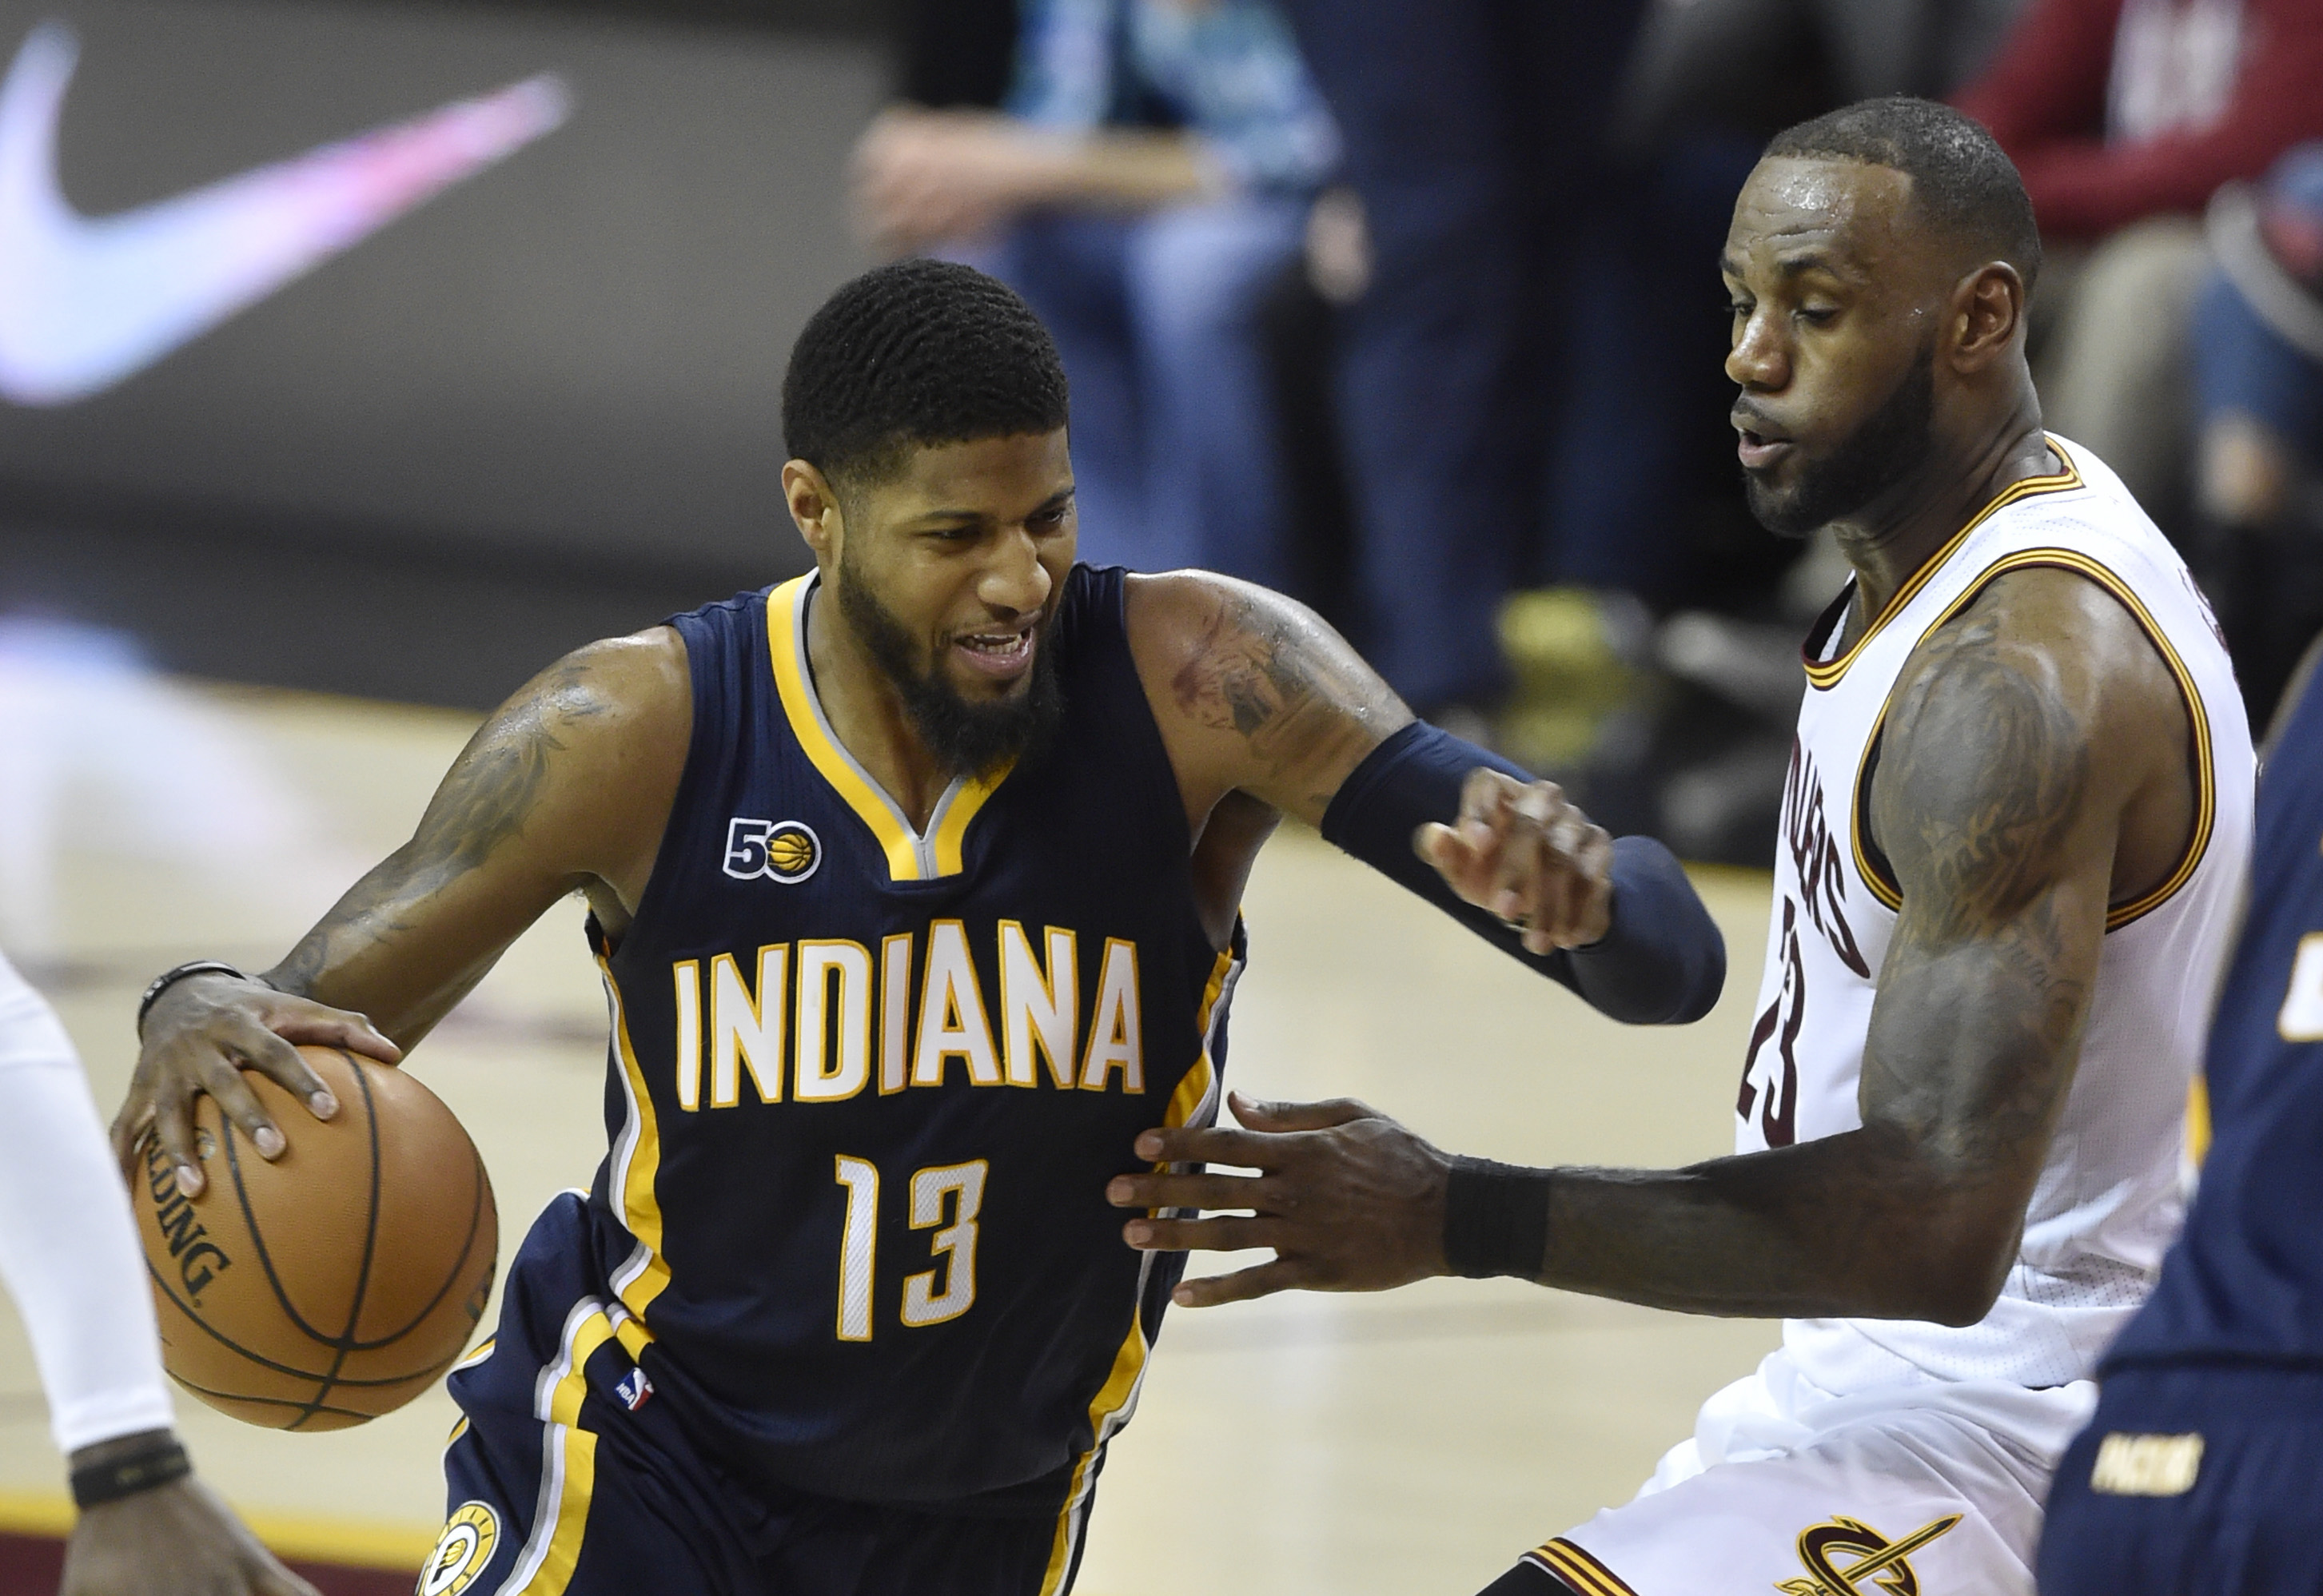 pacers vs cavaliers - photo #41